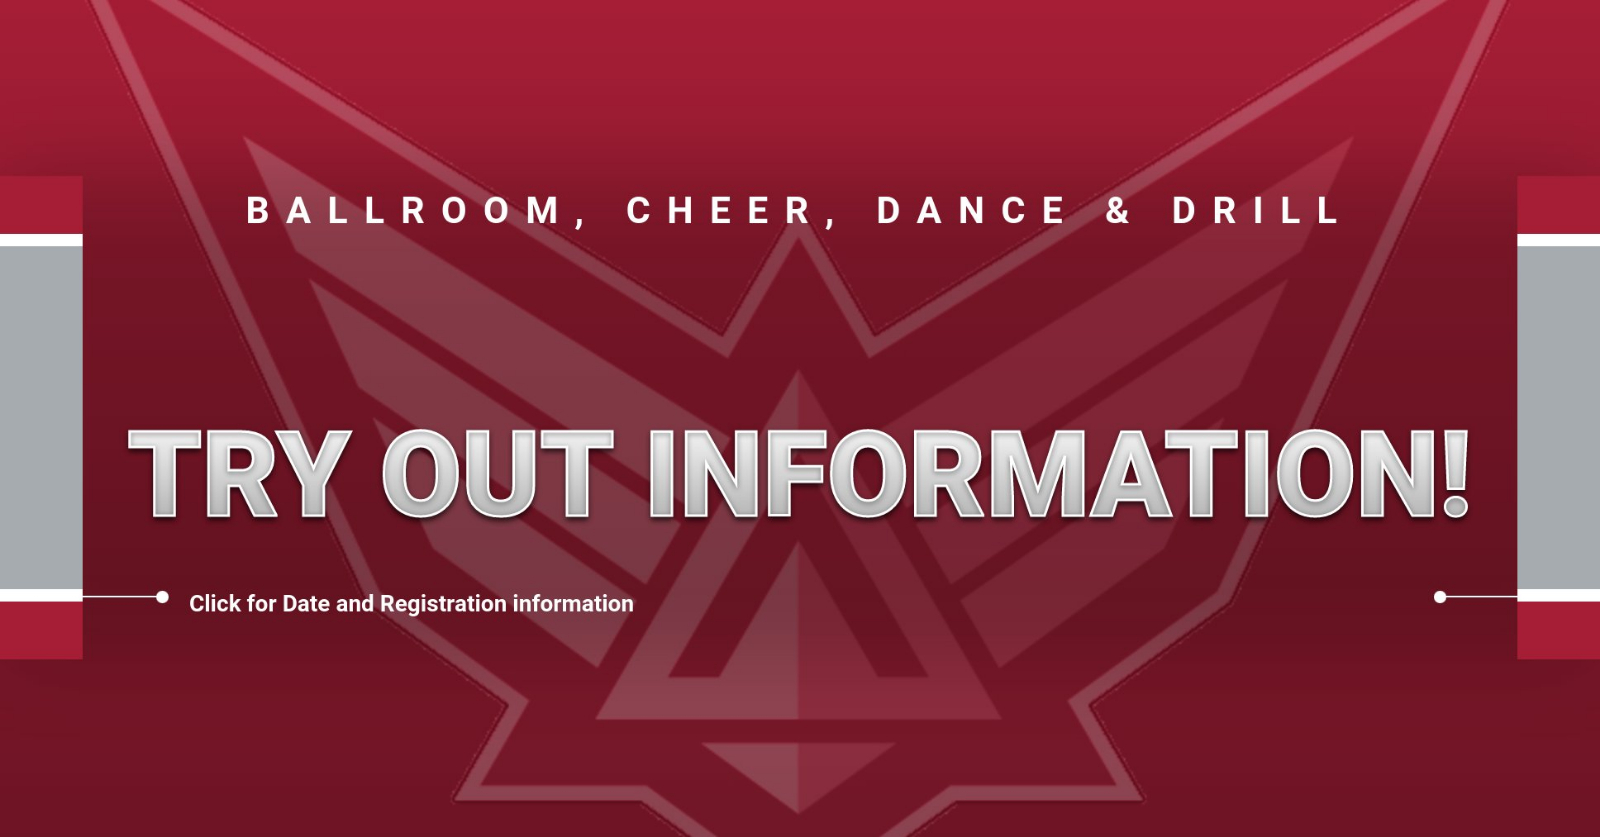 Ballroom, Cheer, Dance and Drill Tryout information!